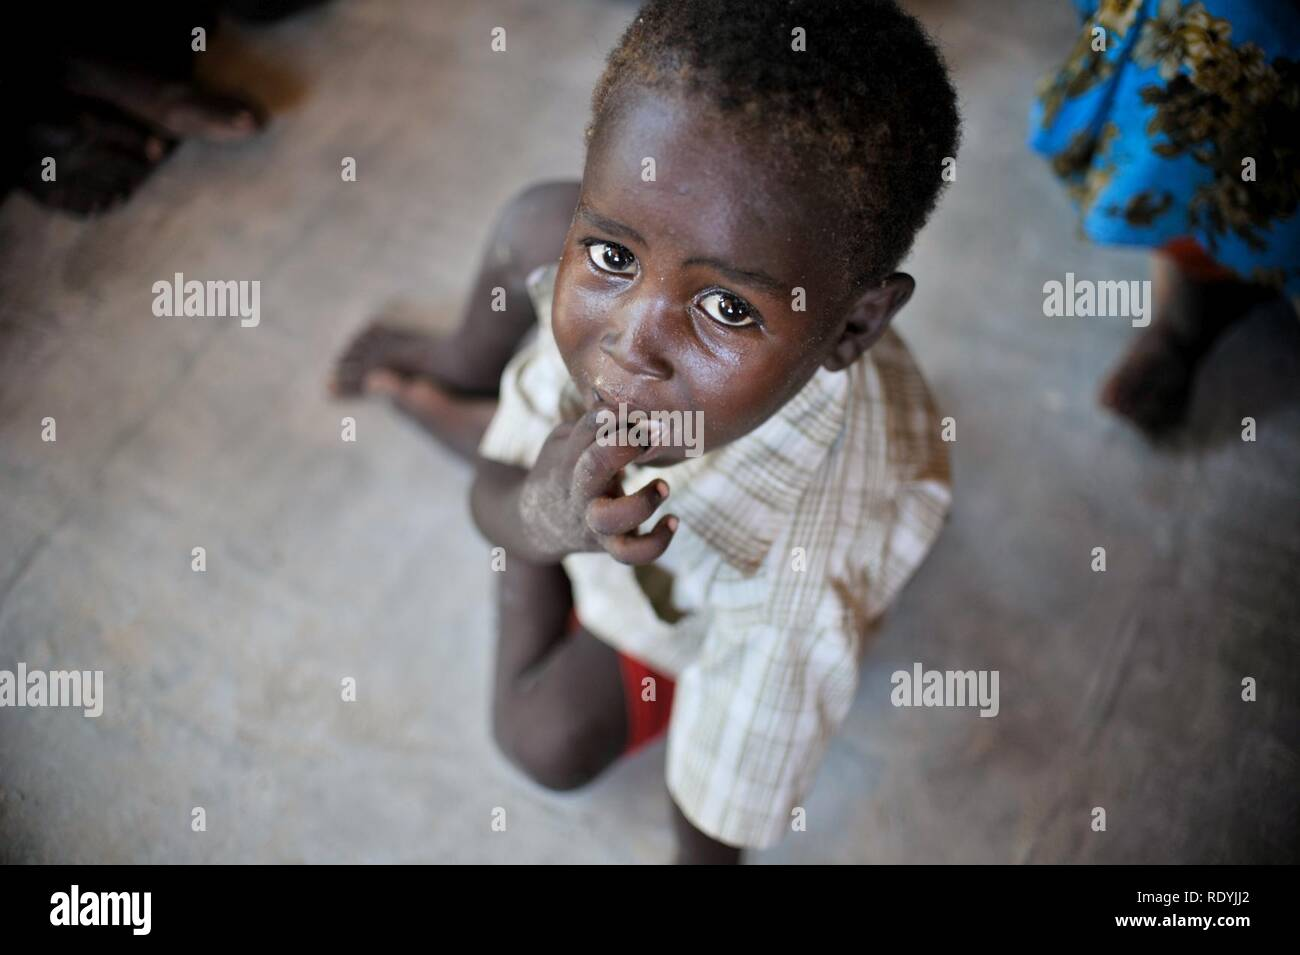 At a clinic held at Jazeera Training Camp on April 6, patients come to a free medical clinic in order to receive treatment for a variety of maladies. Many of the clinic's patients come from Jazeera (8633034093). - Stock Image